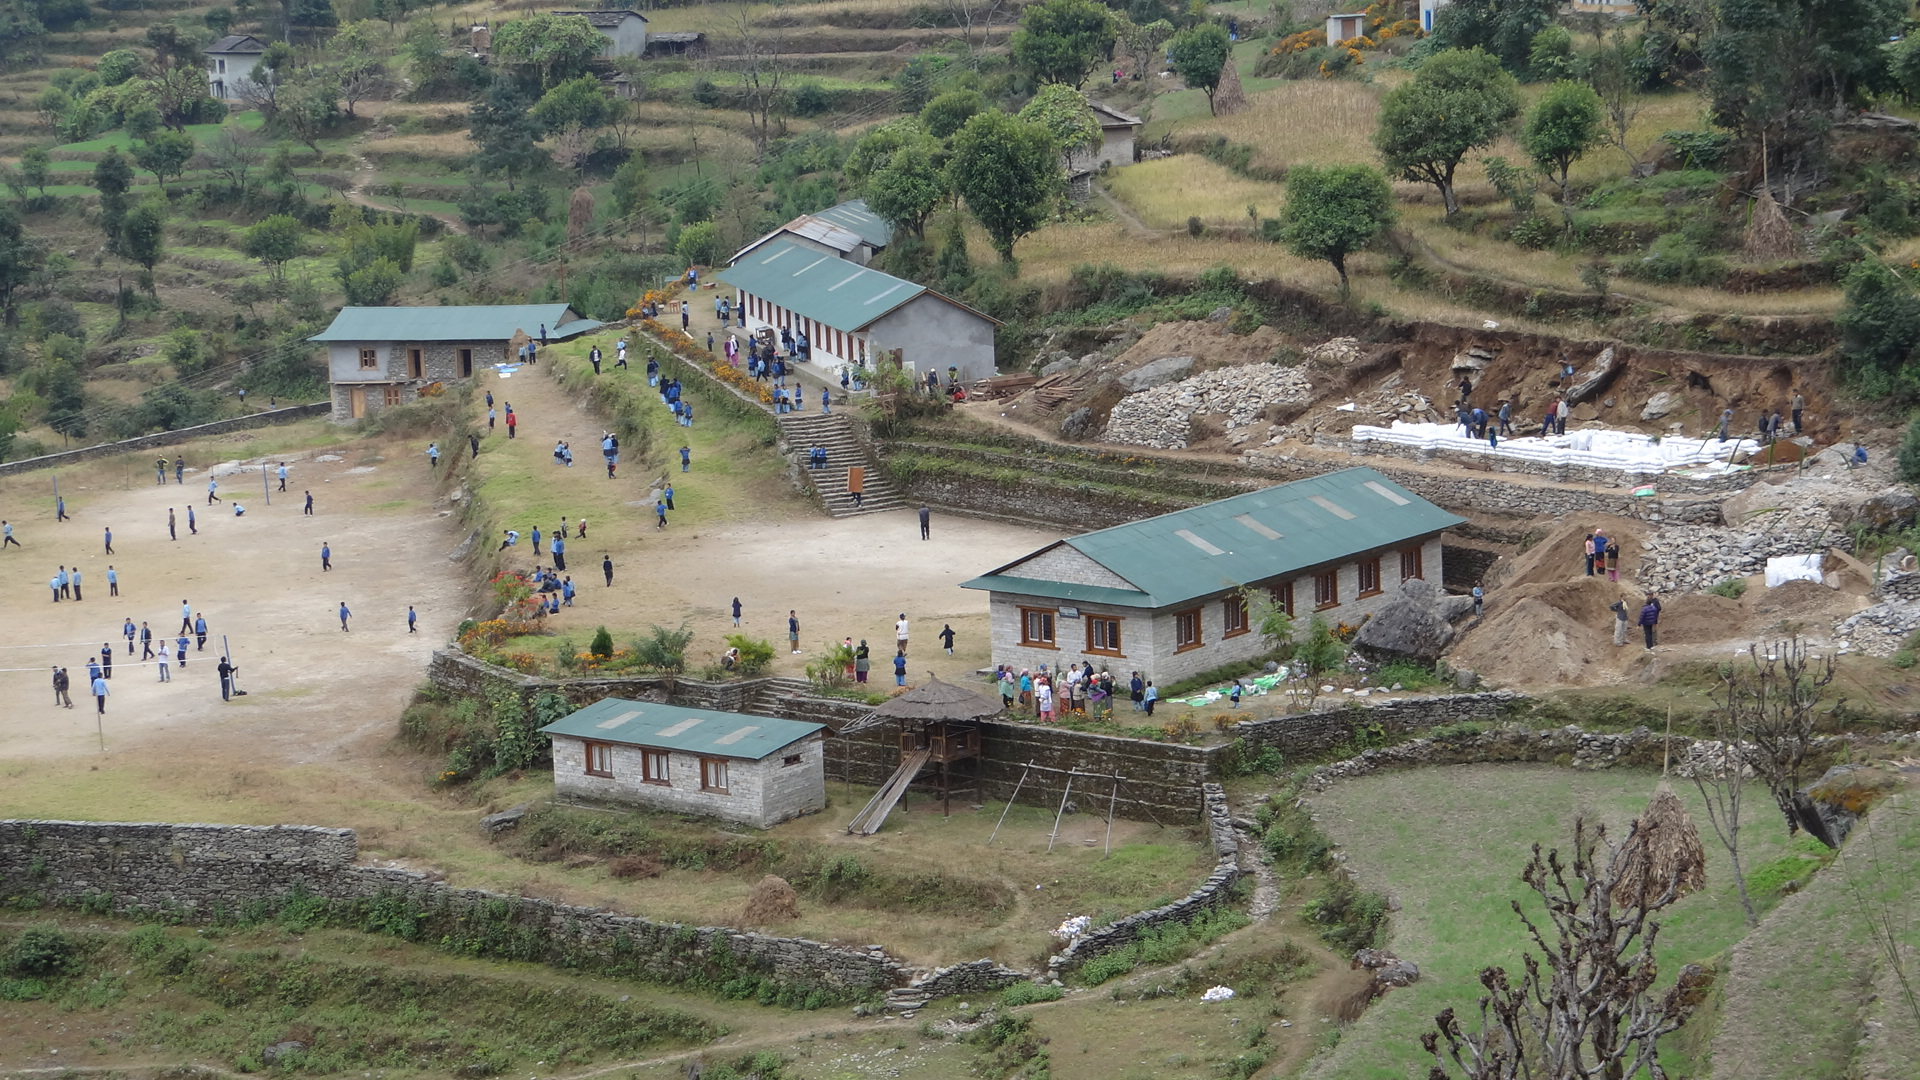 This school, an earthbag construction project, is the first of its kind in the region and (from what we know) just the 2nd time earthbags have been utilized in Nepal! (click to enlarge)